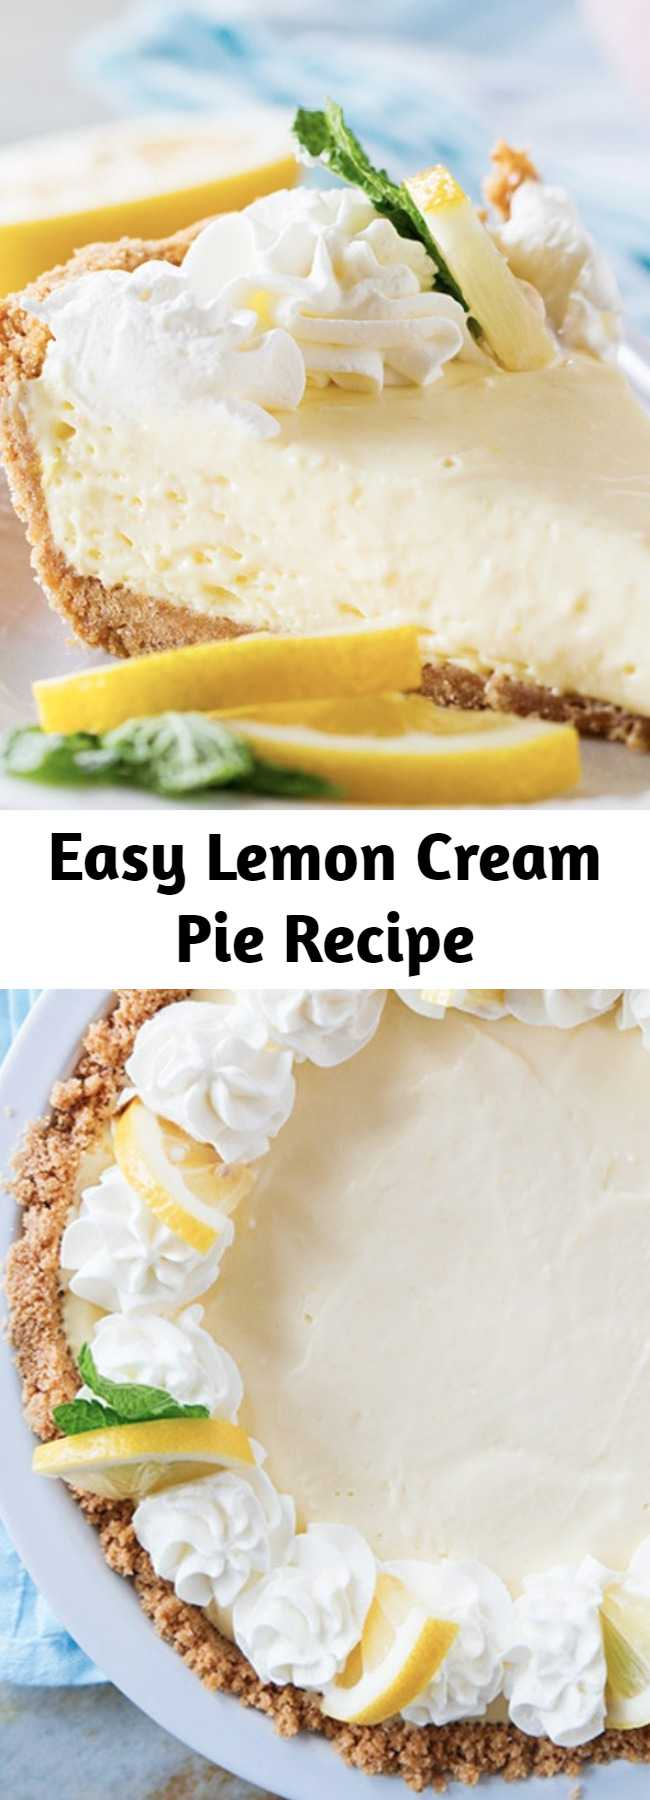 Easy Lemon Cream Pie Recipe - A simple lemon pie is only a few ingredients away! This Lemon Cream Pie comes together with very little prep, is practically fail-proof, and is a pie everyone will love!